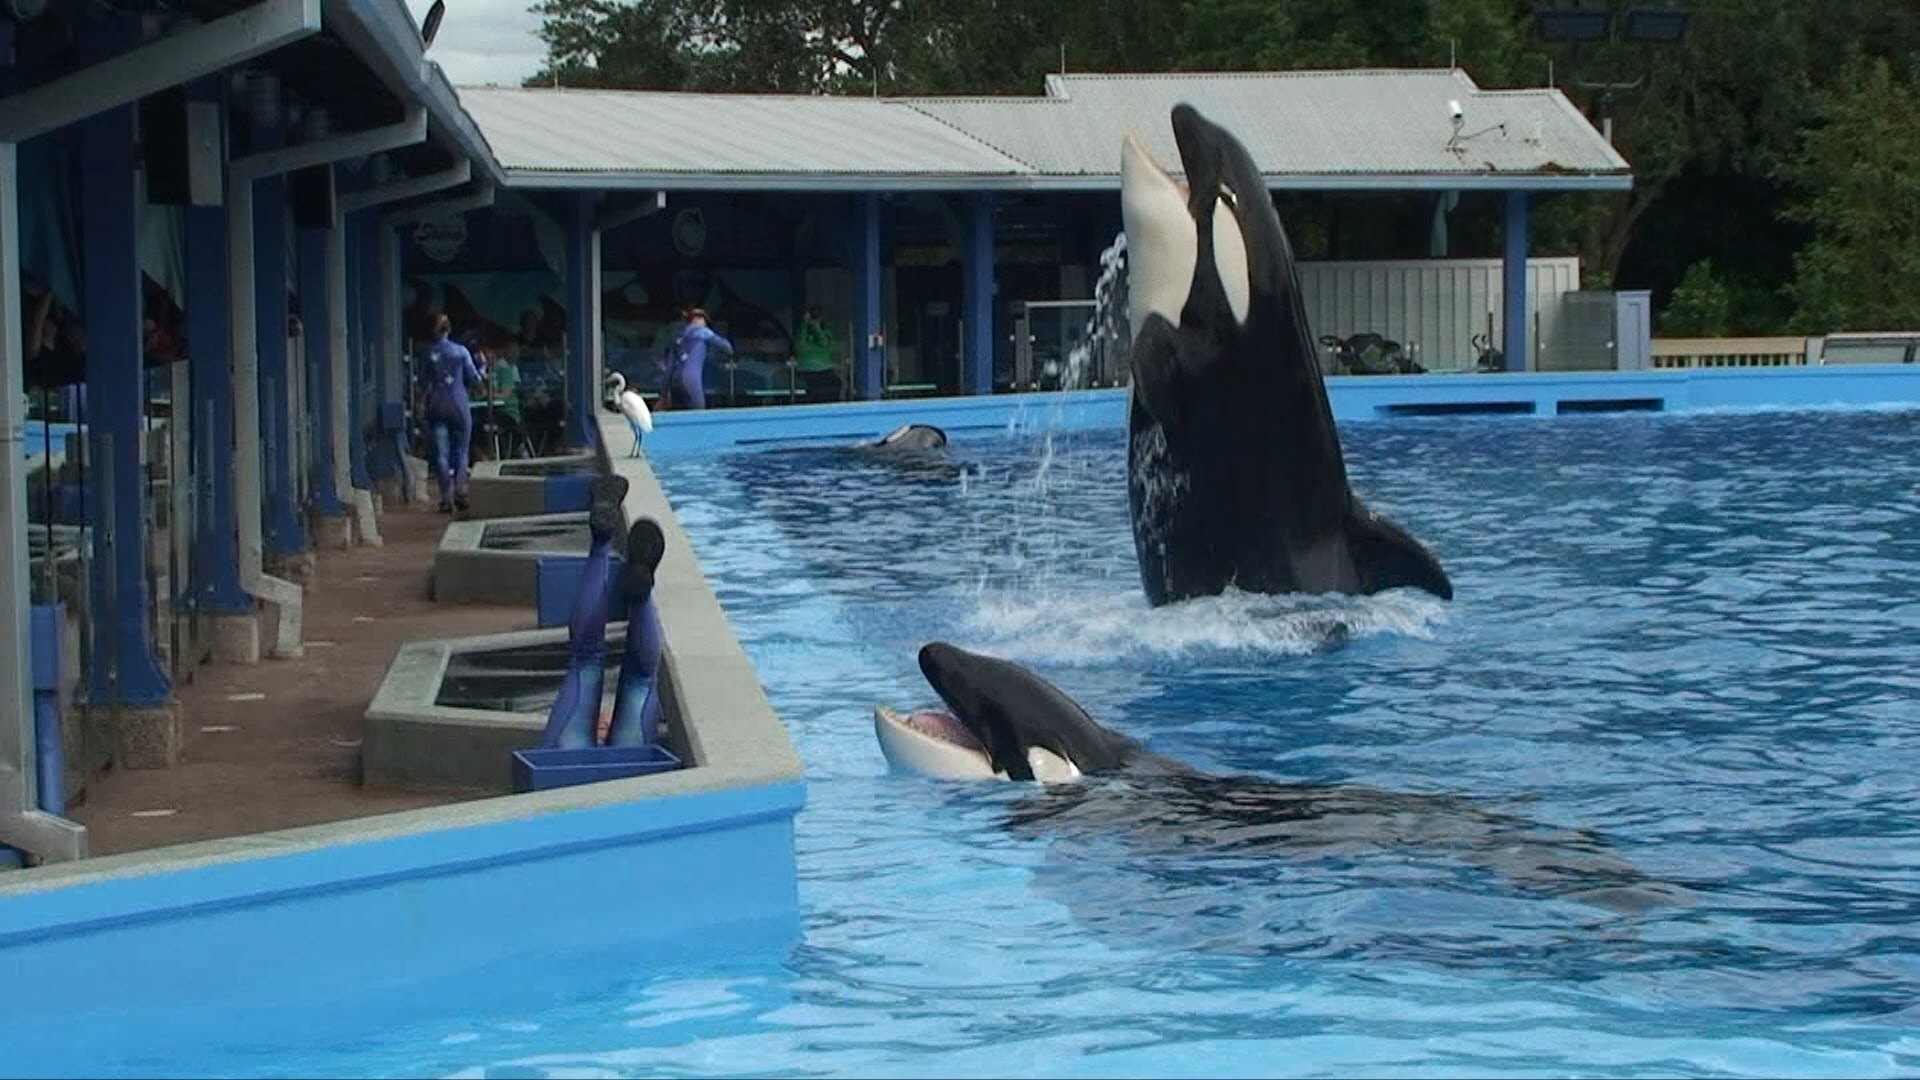 Res: 1920x1080, Dine with Shamu at SeaWorld Orlando Overview - Food Offerings, Whales and  Trainers, Sea World - YouTube